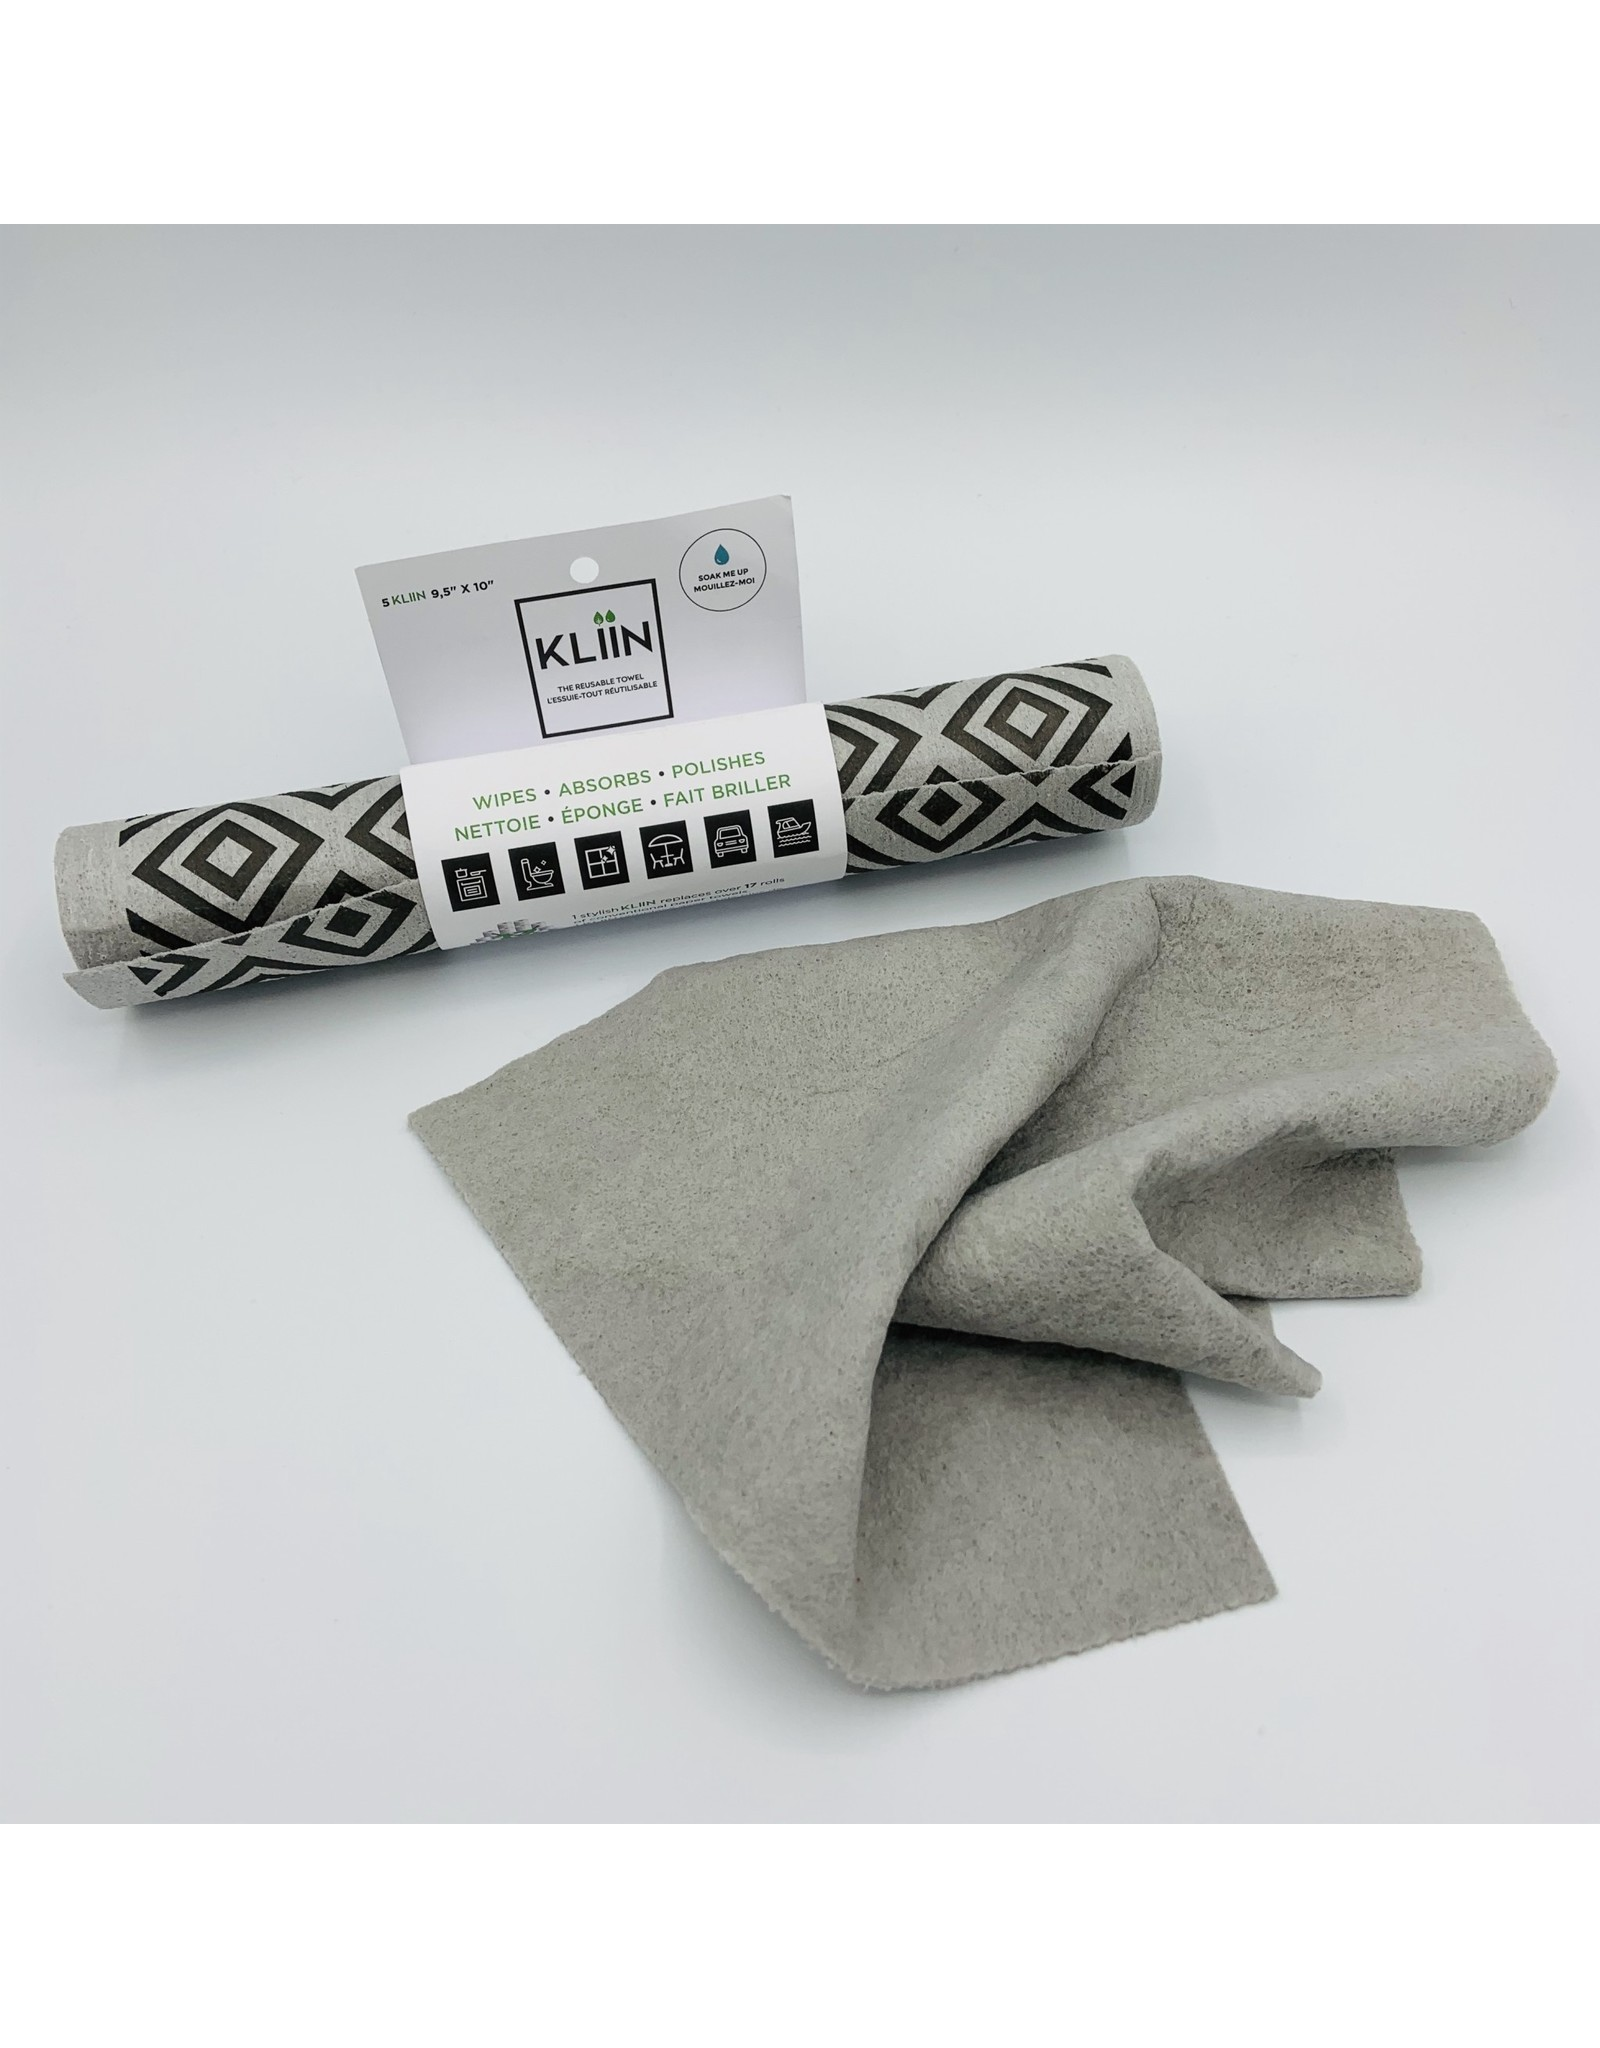 Kliin Organic Inc. Reusable Towels in a Roll by Kliin